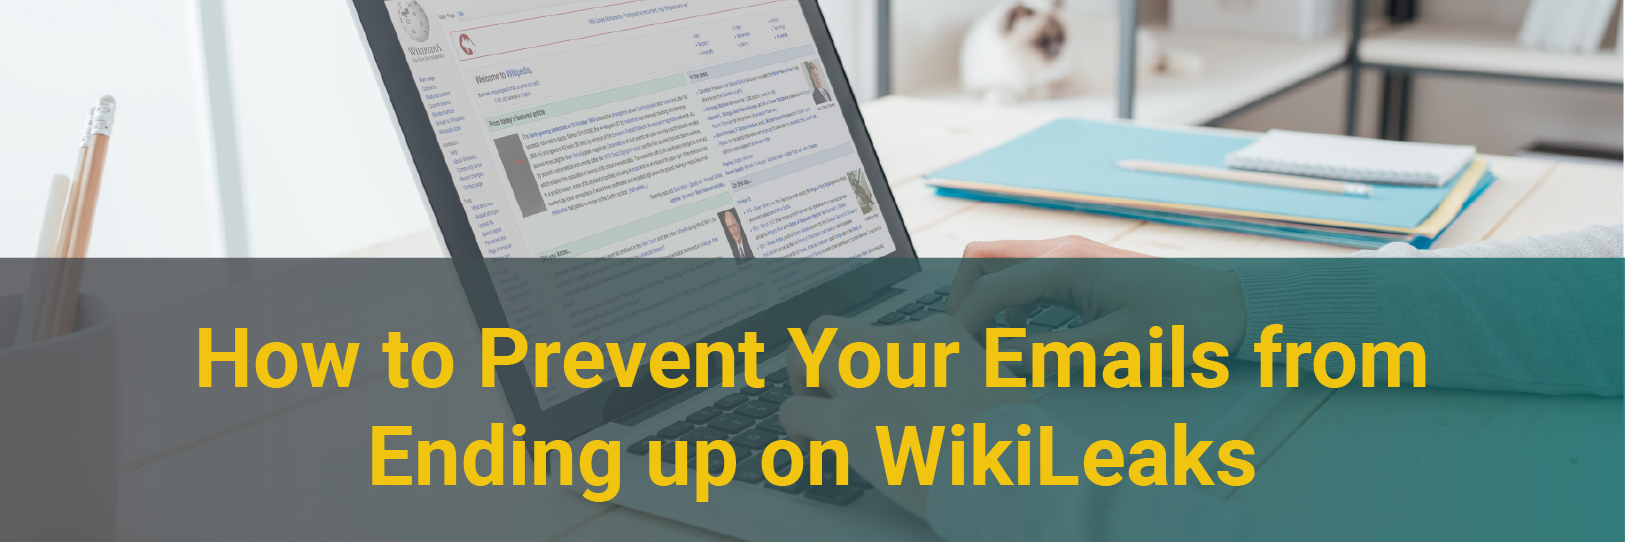 How to Prevent Your Emails from Ending up on WikiLeaks